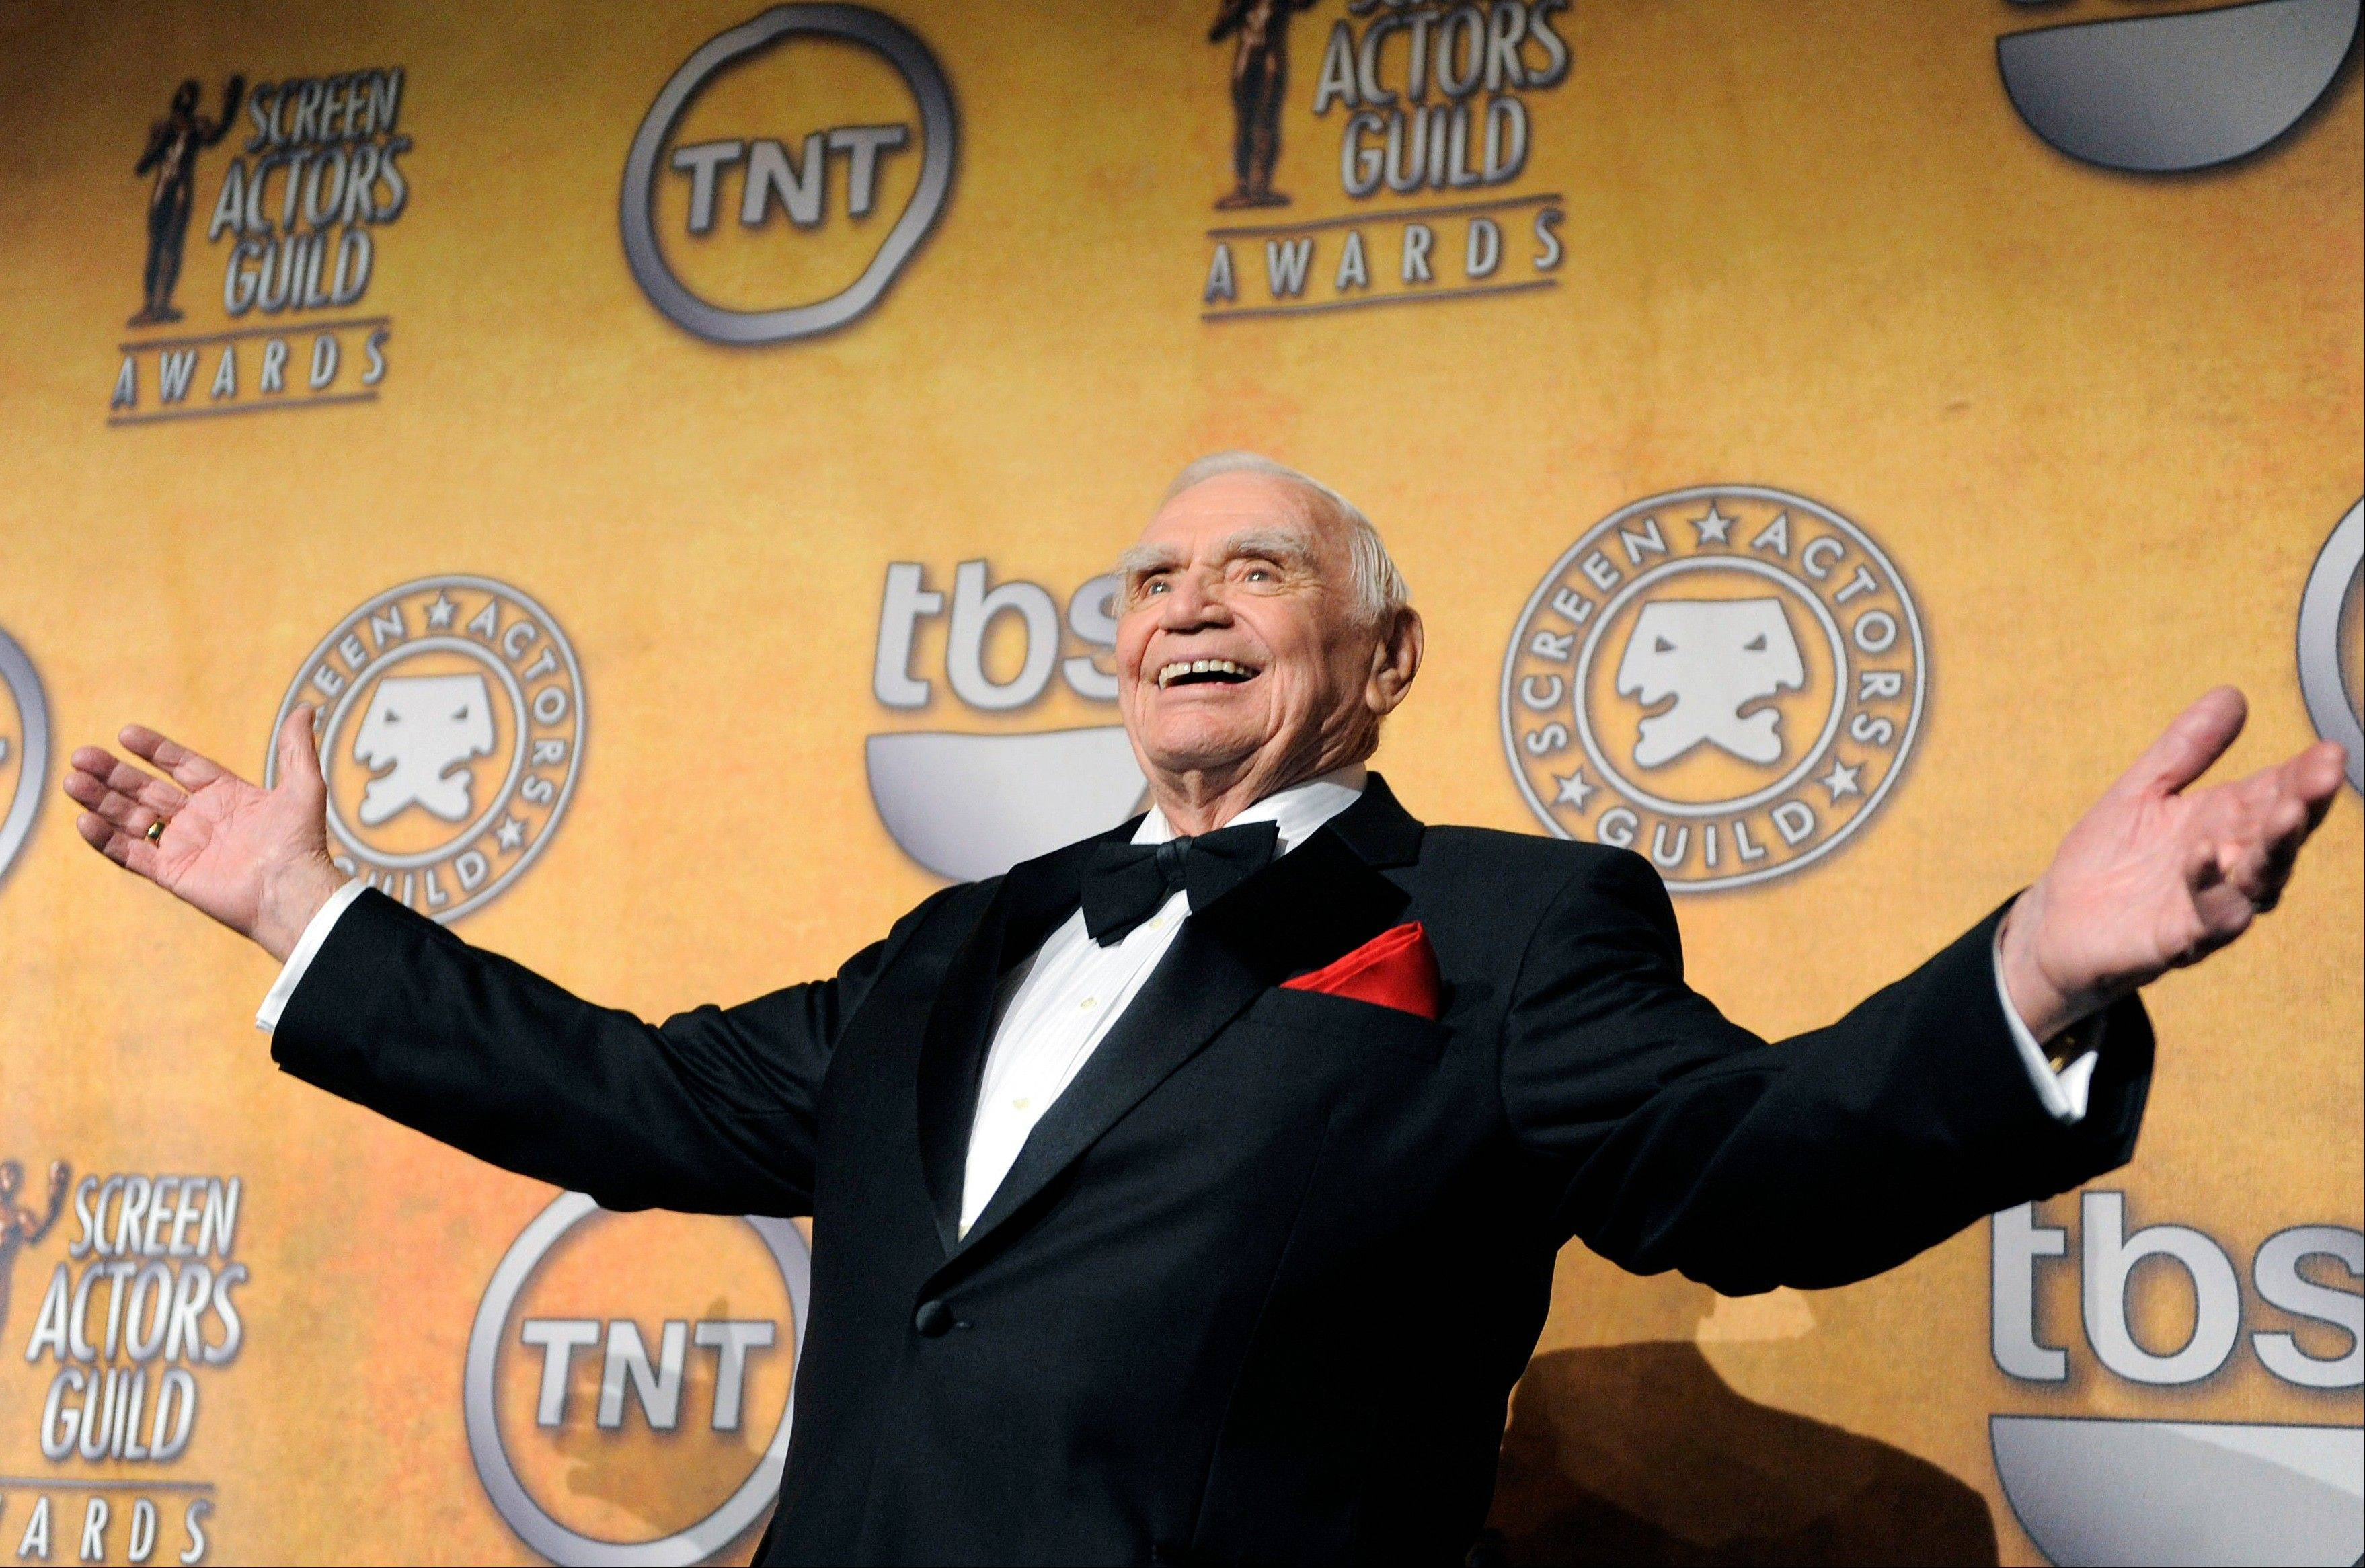 In this Jan. 30, 2011, file photo, Ernest Borgnine poses backstage after receiving the life achievement award at the 17th Annual Screen Actors Guild Awards in Los Angeles. A spokesman said Sunday, July 8, 2012, that Borgnine has died at the age of 95.